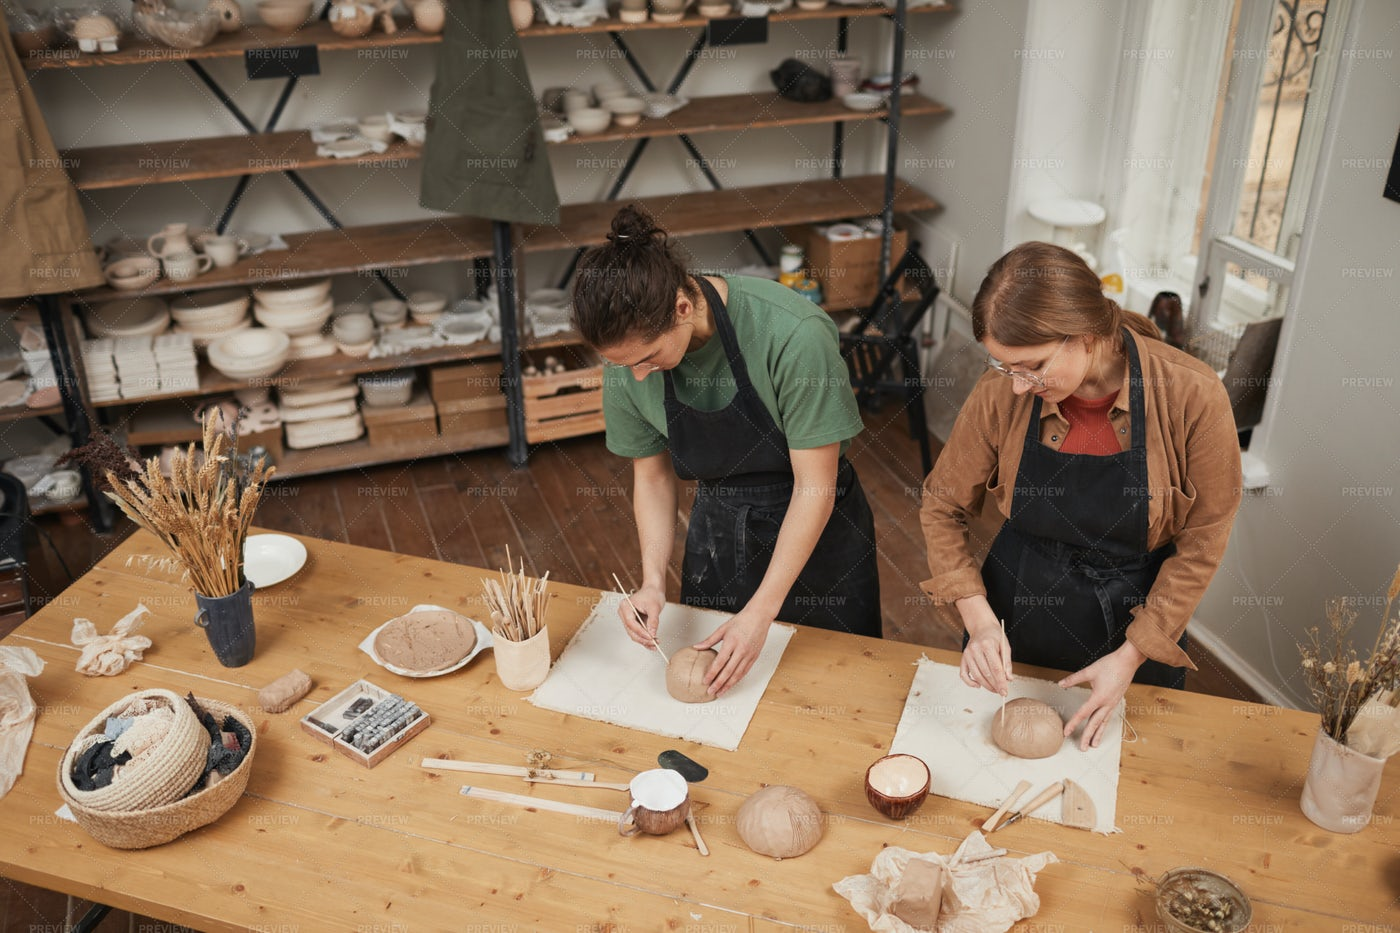 Students In Pottery Workshop: Stock Photos